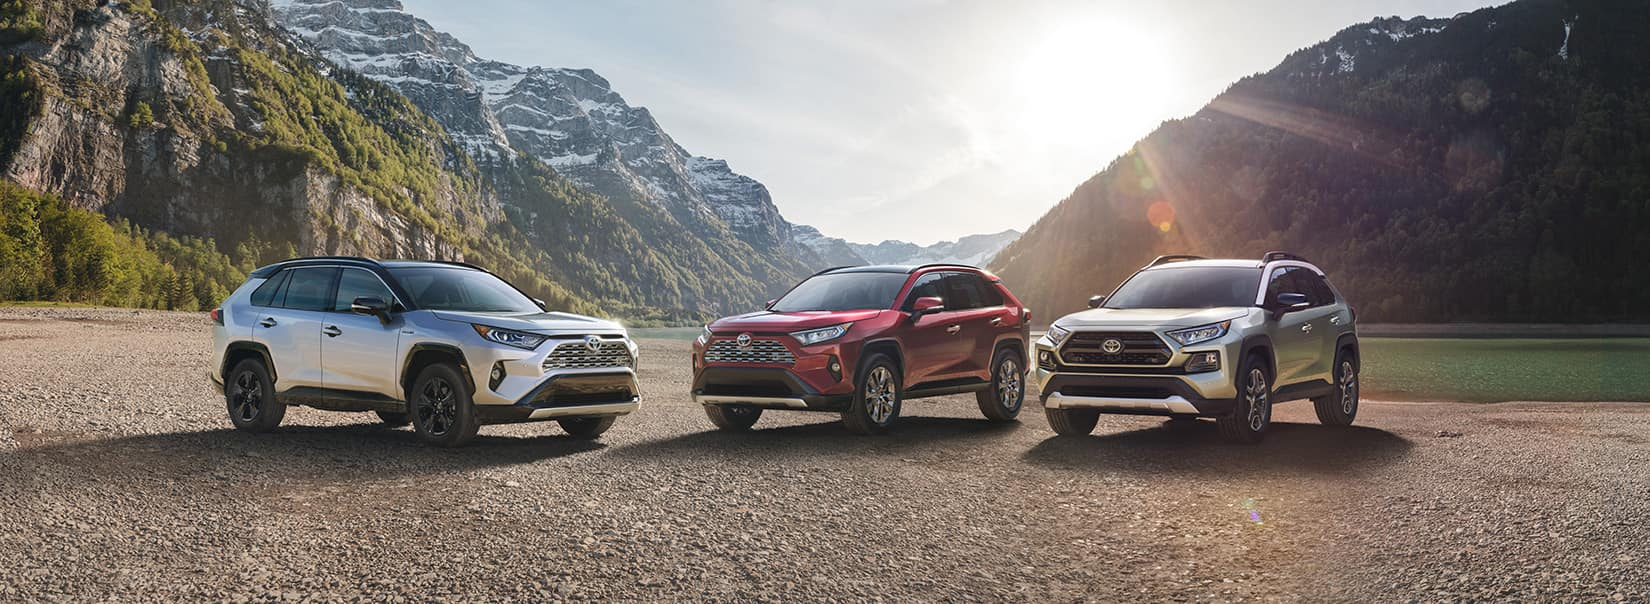 Performance features of the 2019 Toyota RAV4 at Jim Coleman Automotive | Sliver, red, white Toyota RAV4 parked on ground